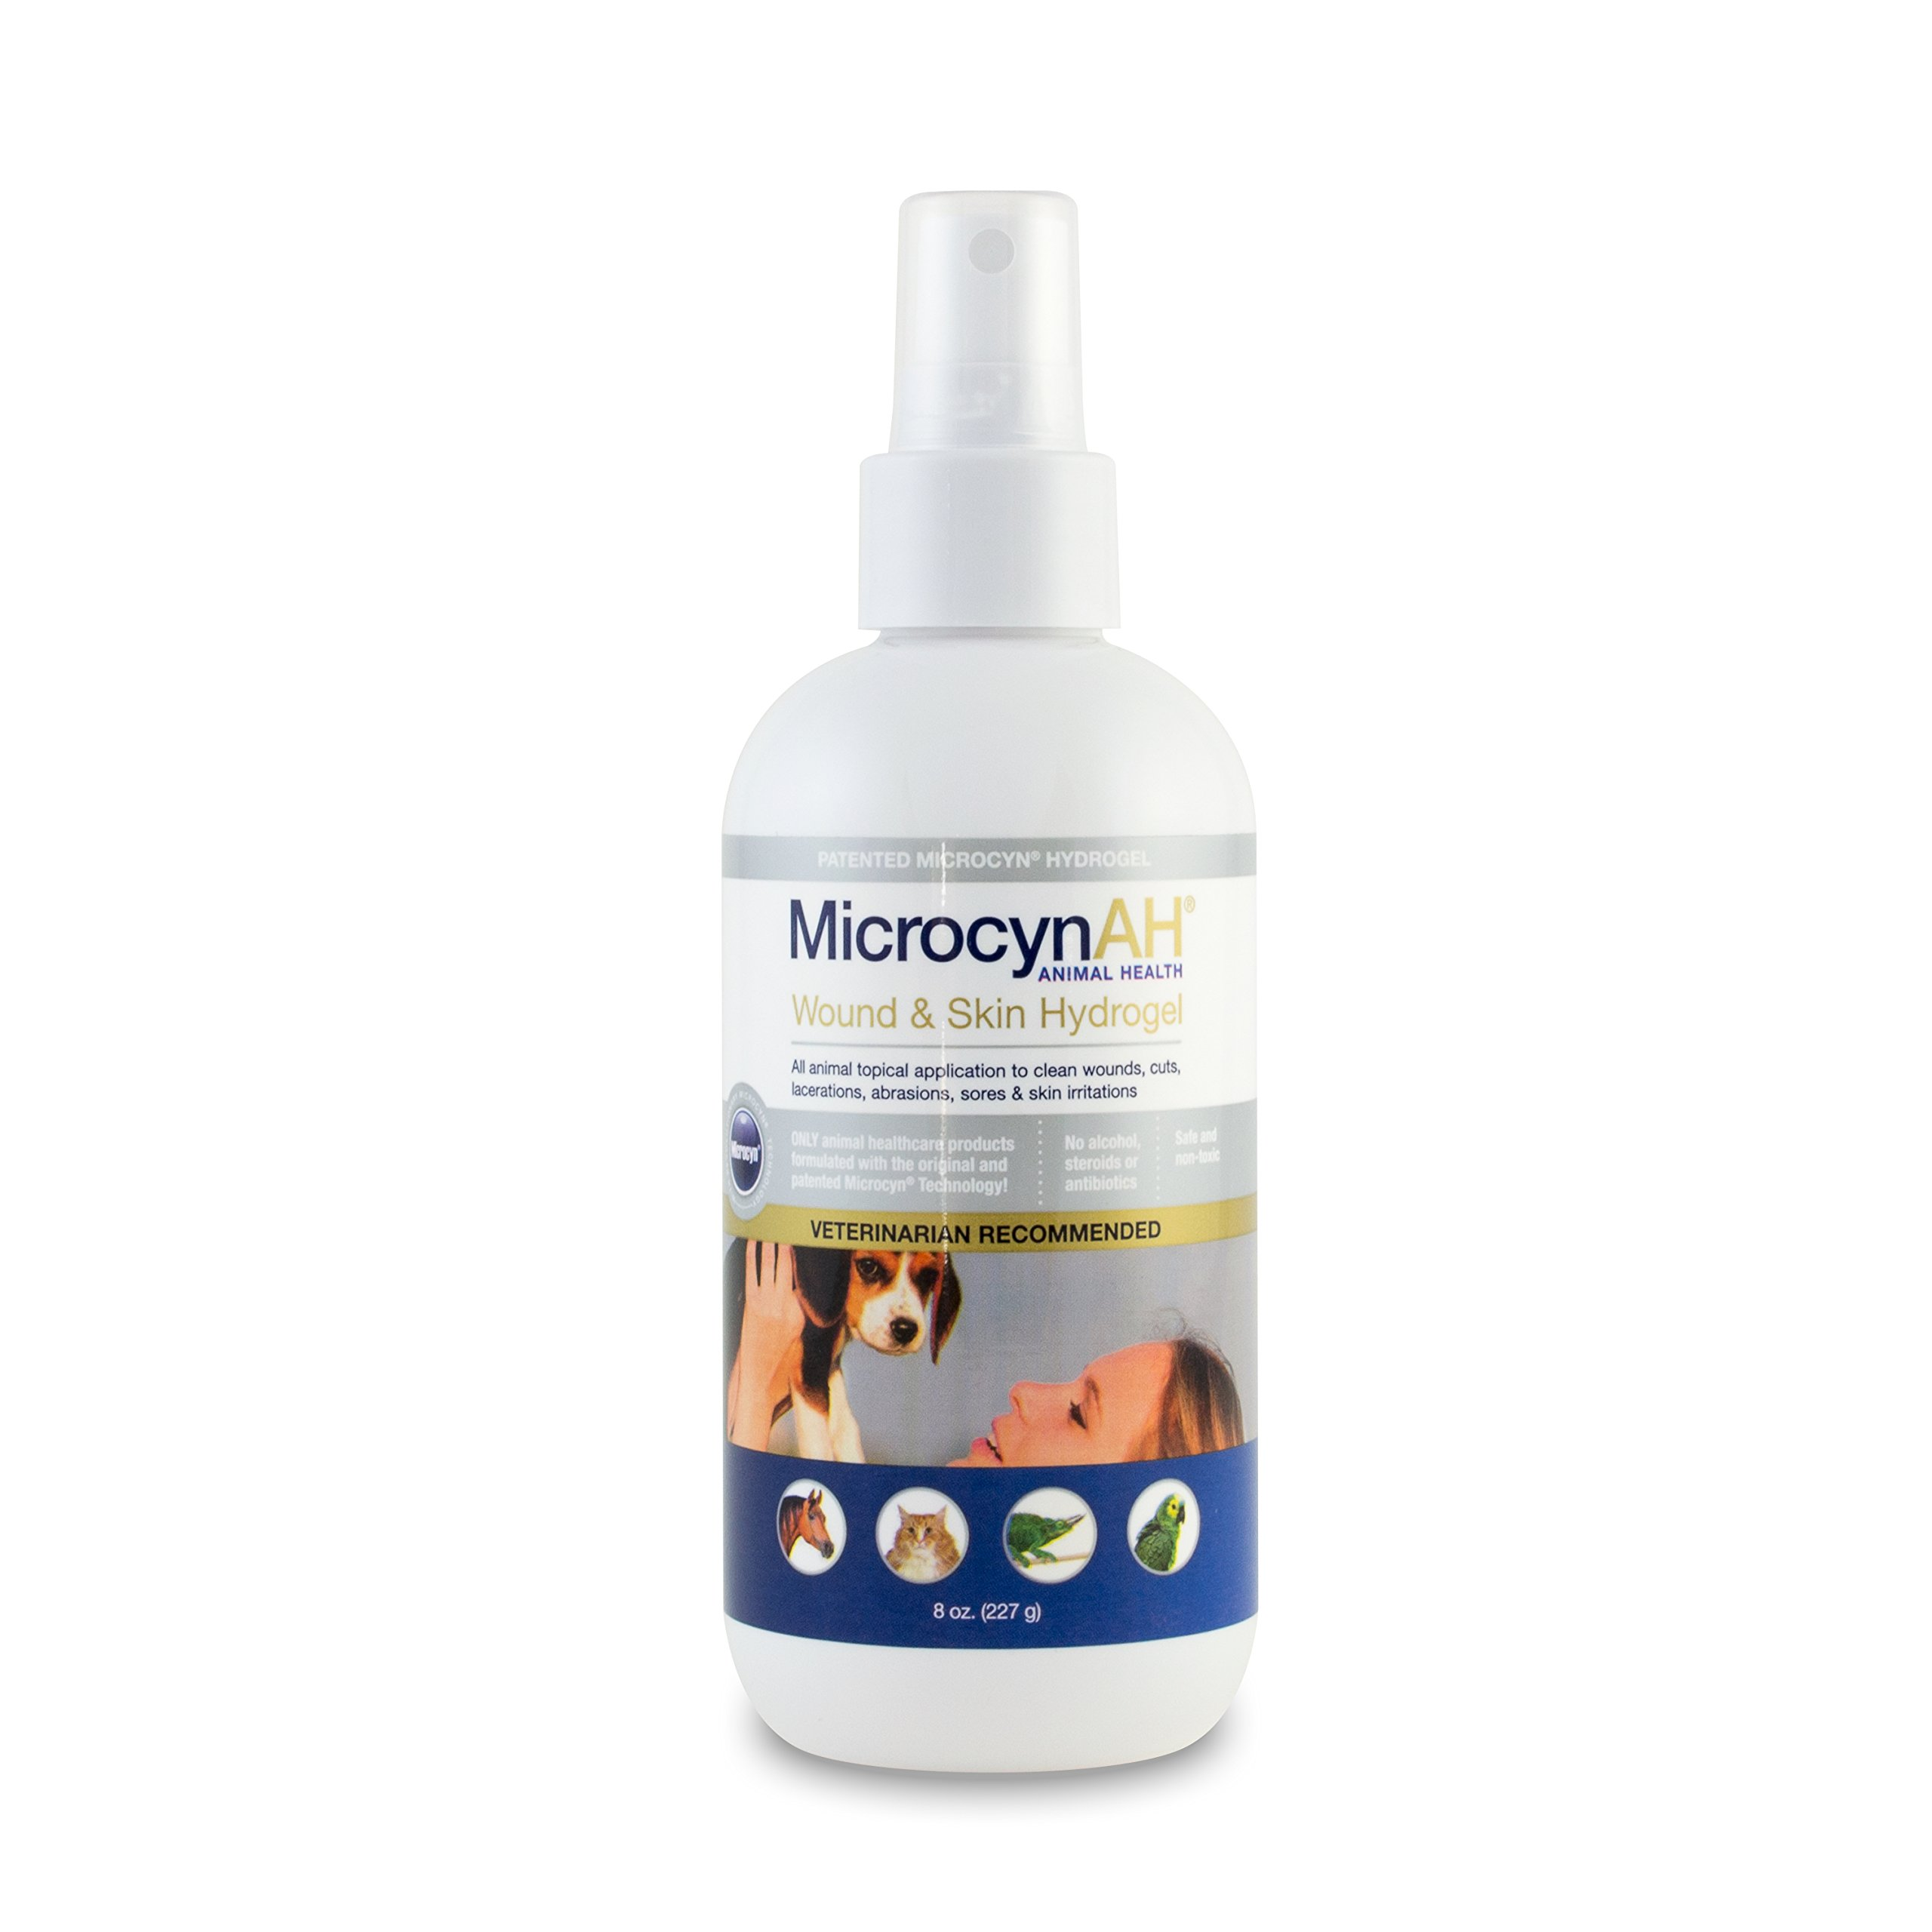 MicrocynAH Wound and Skin Care Sprayable Hydrogel, 8-Ounce by MicrocynAH (Image #1)